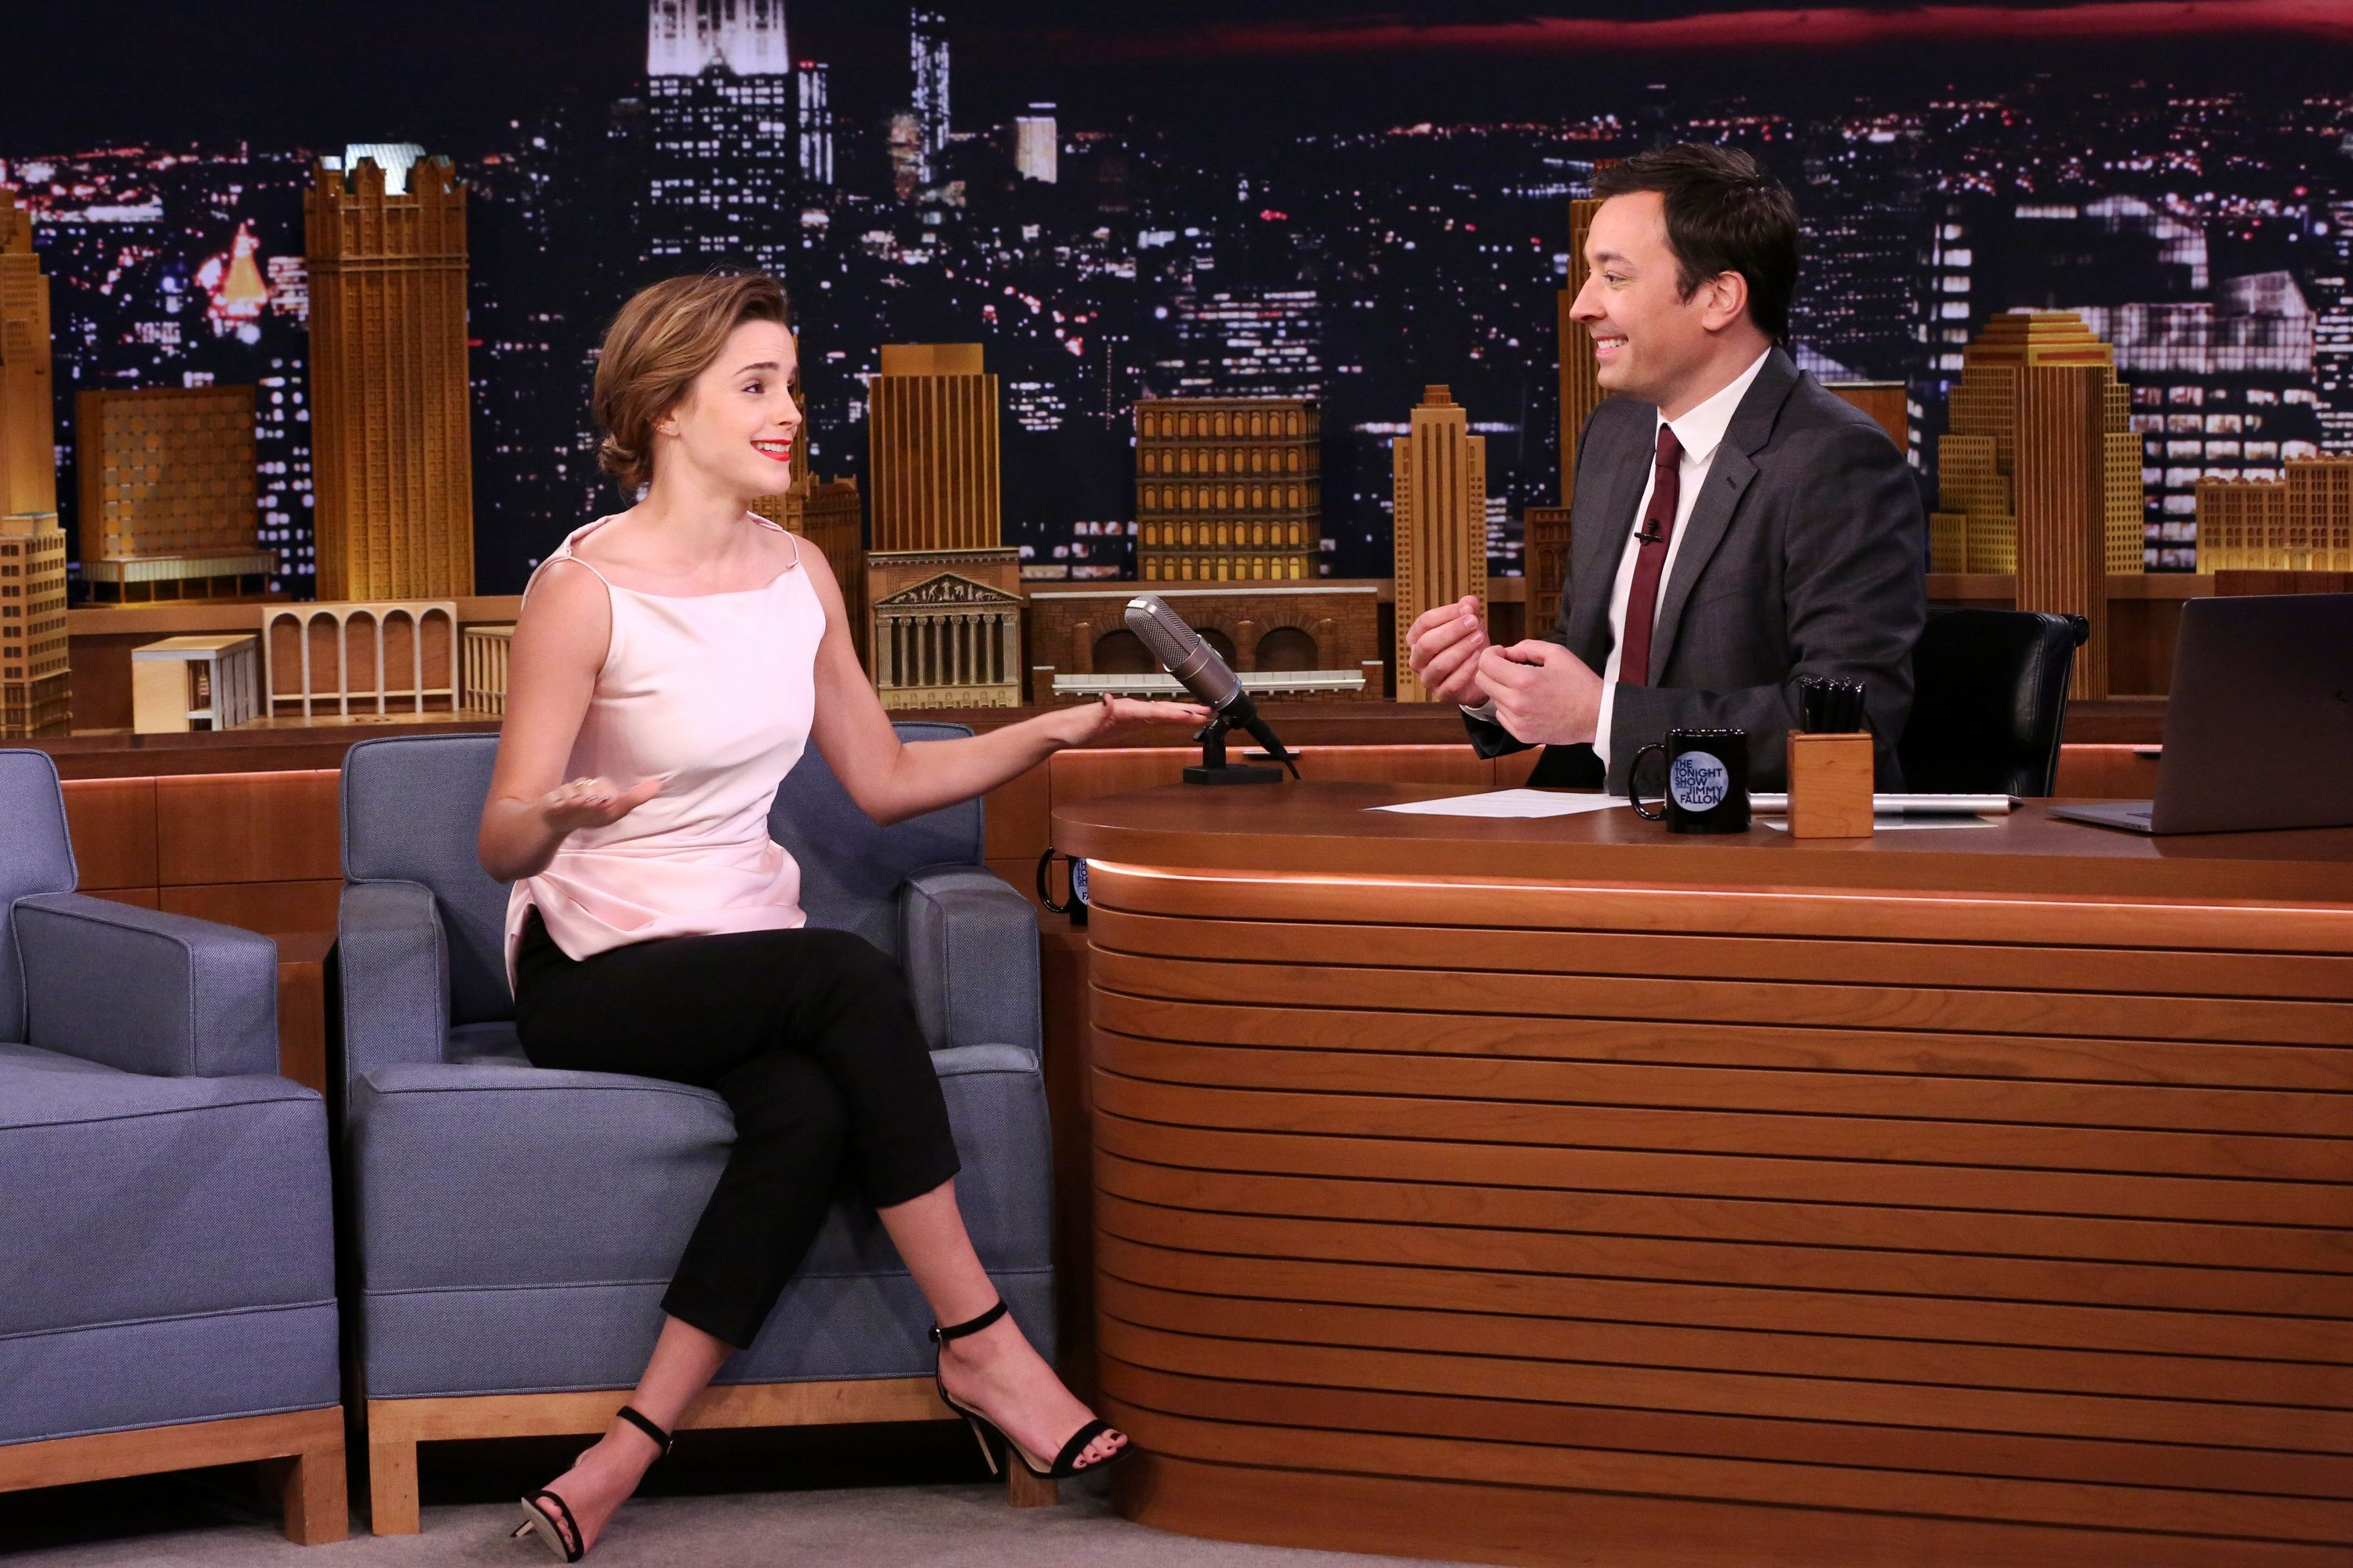 emma watson did the worst thing you can do on jimmy fallon's show